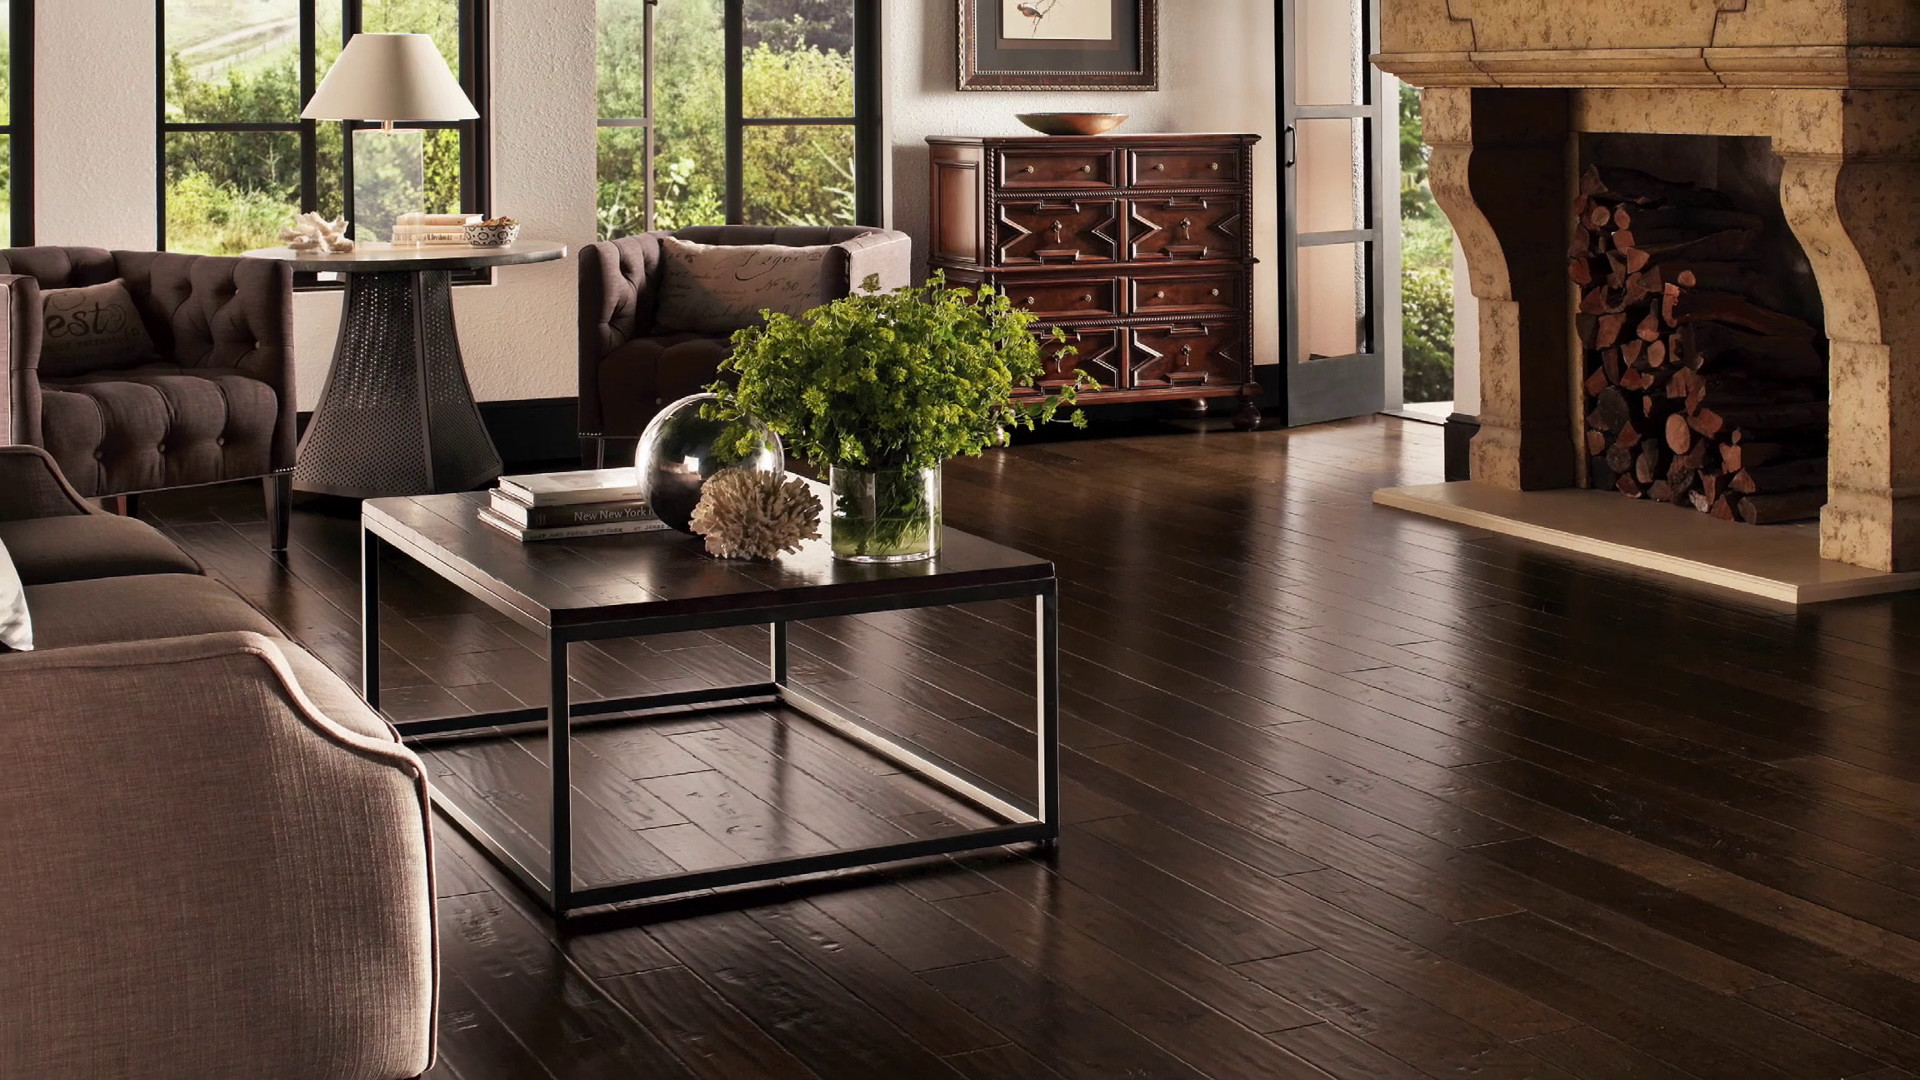 hardwood floor refinishing waukesha wi of flooring waukesha brookfield wi carpet hardwood tile laminate pertaining to bringing flooring straight to you